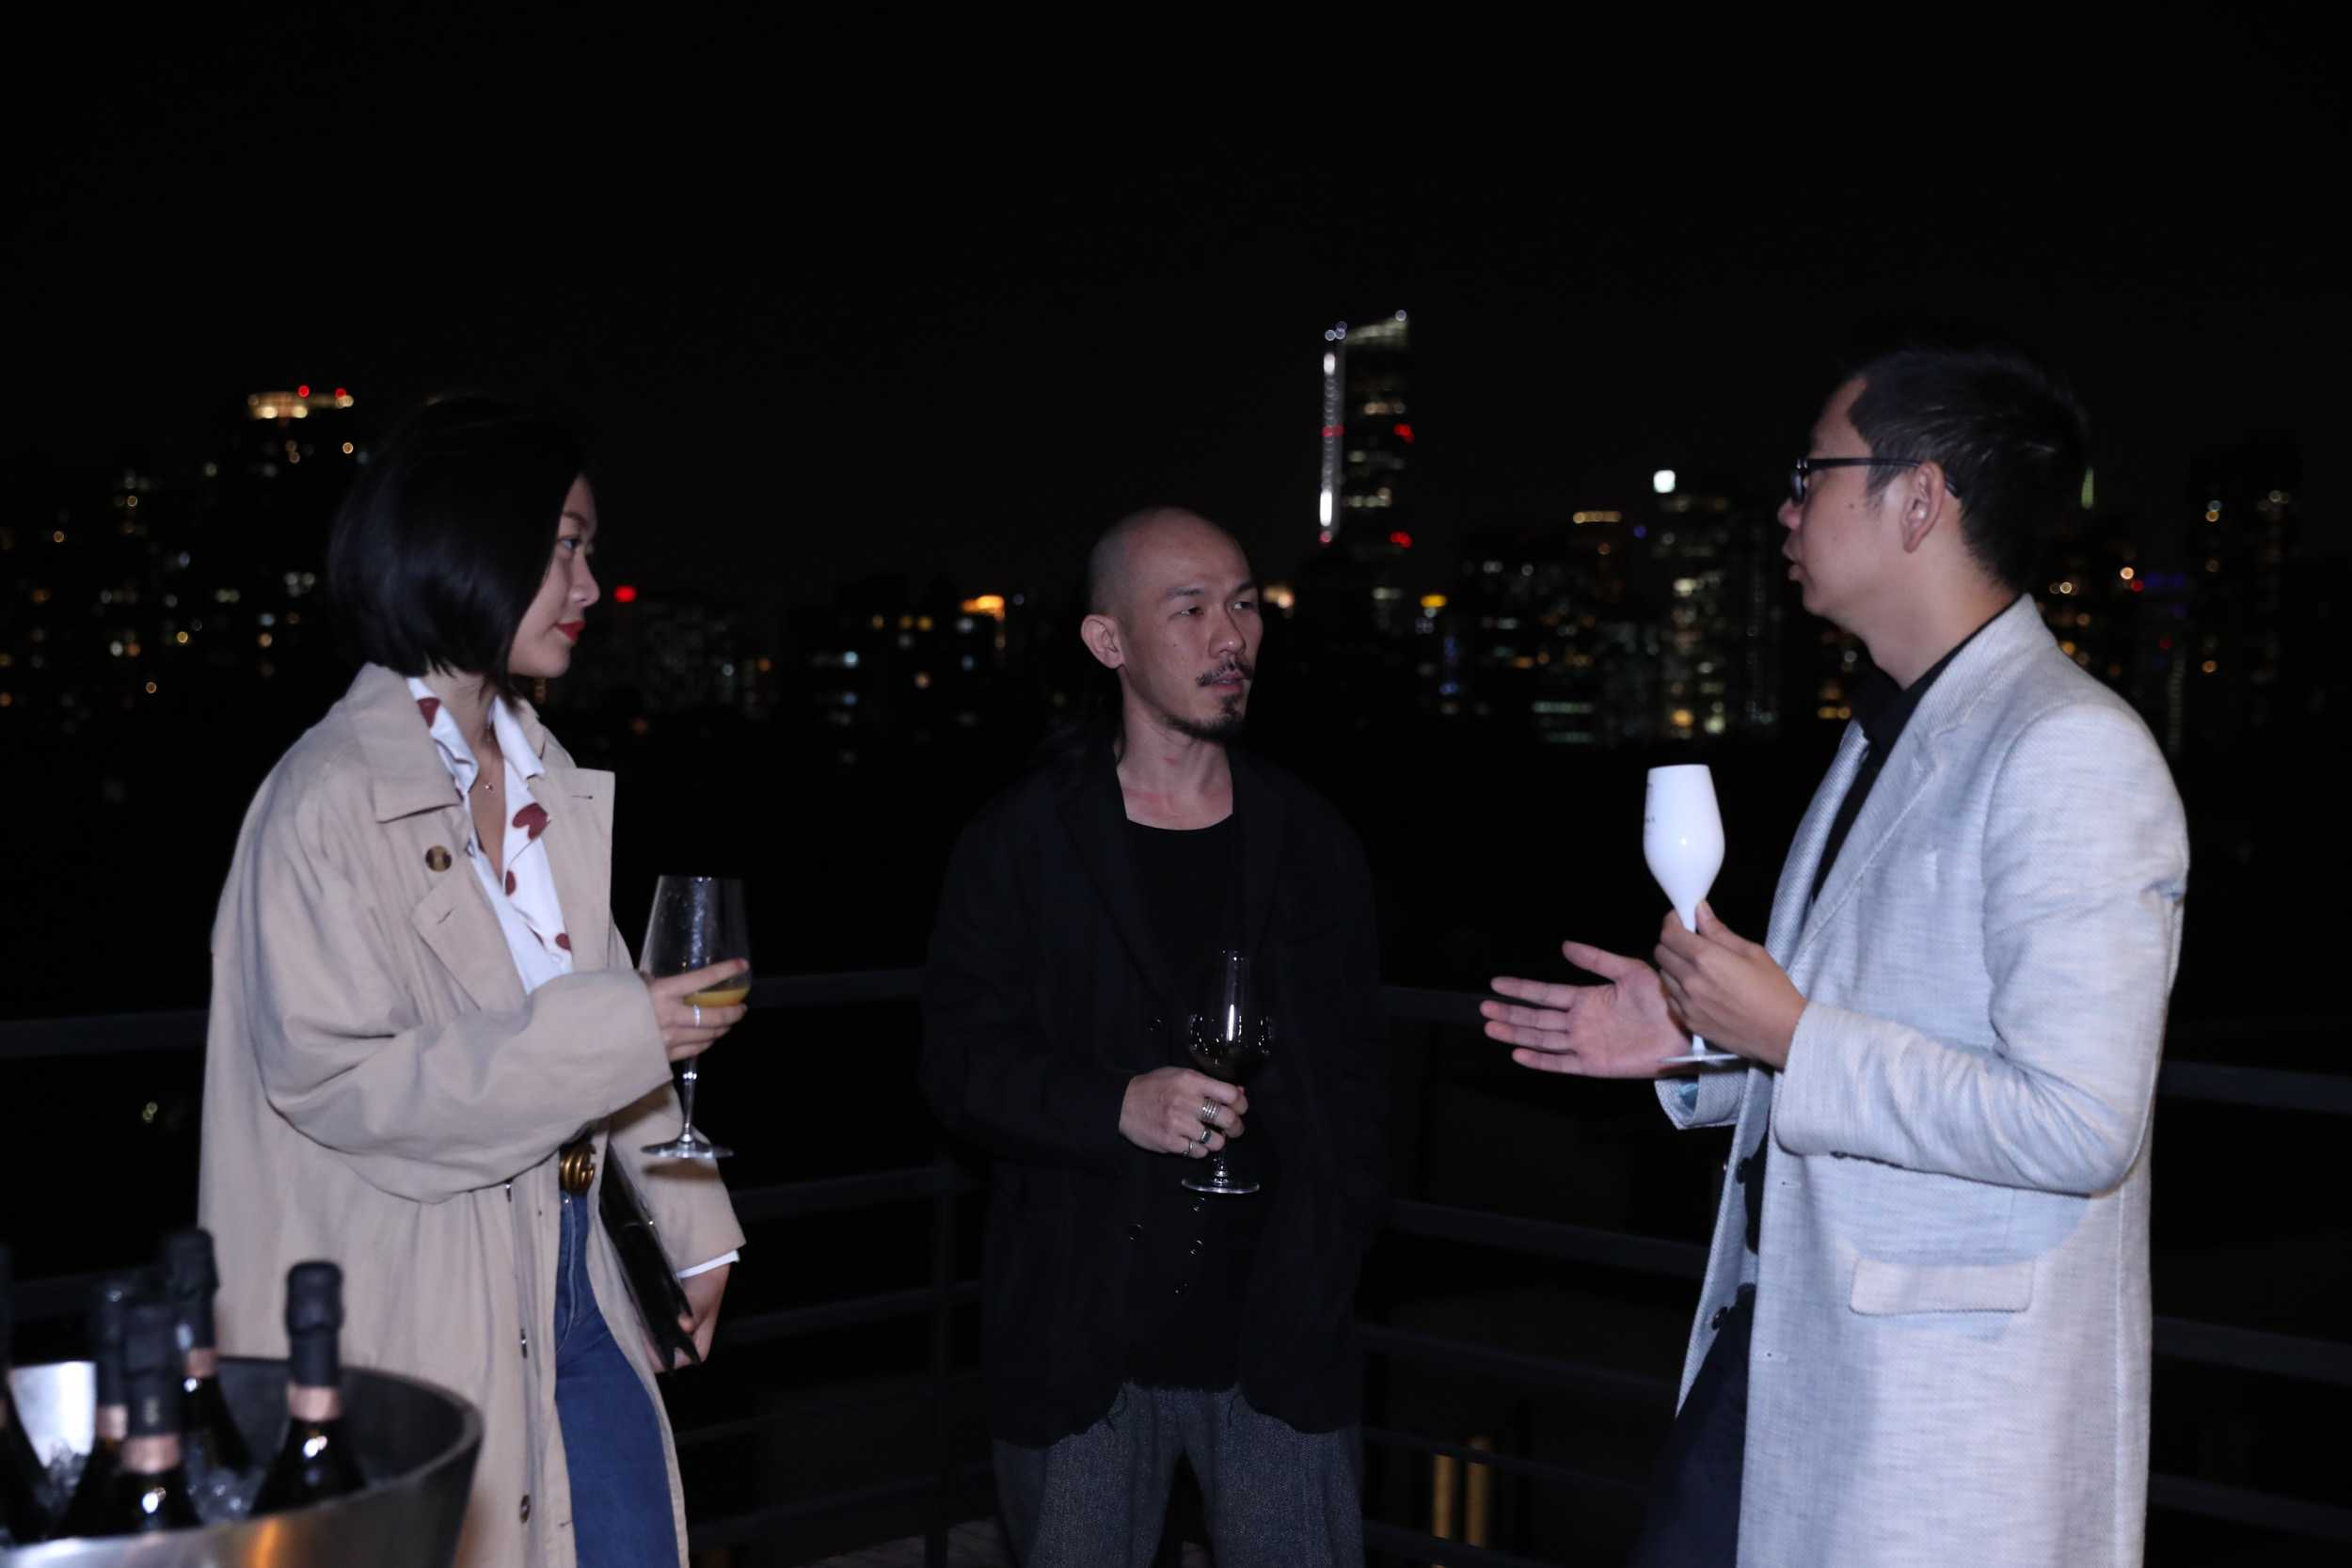 tribe-mannequins-shanghai-guests-01